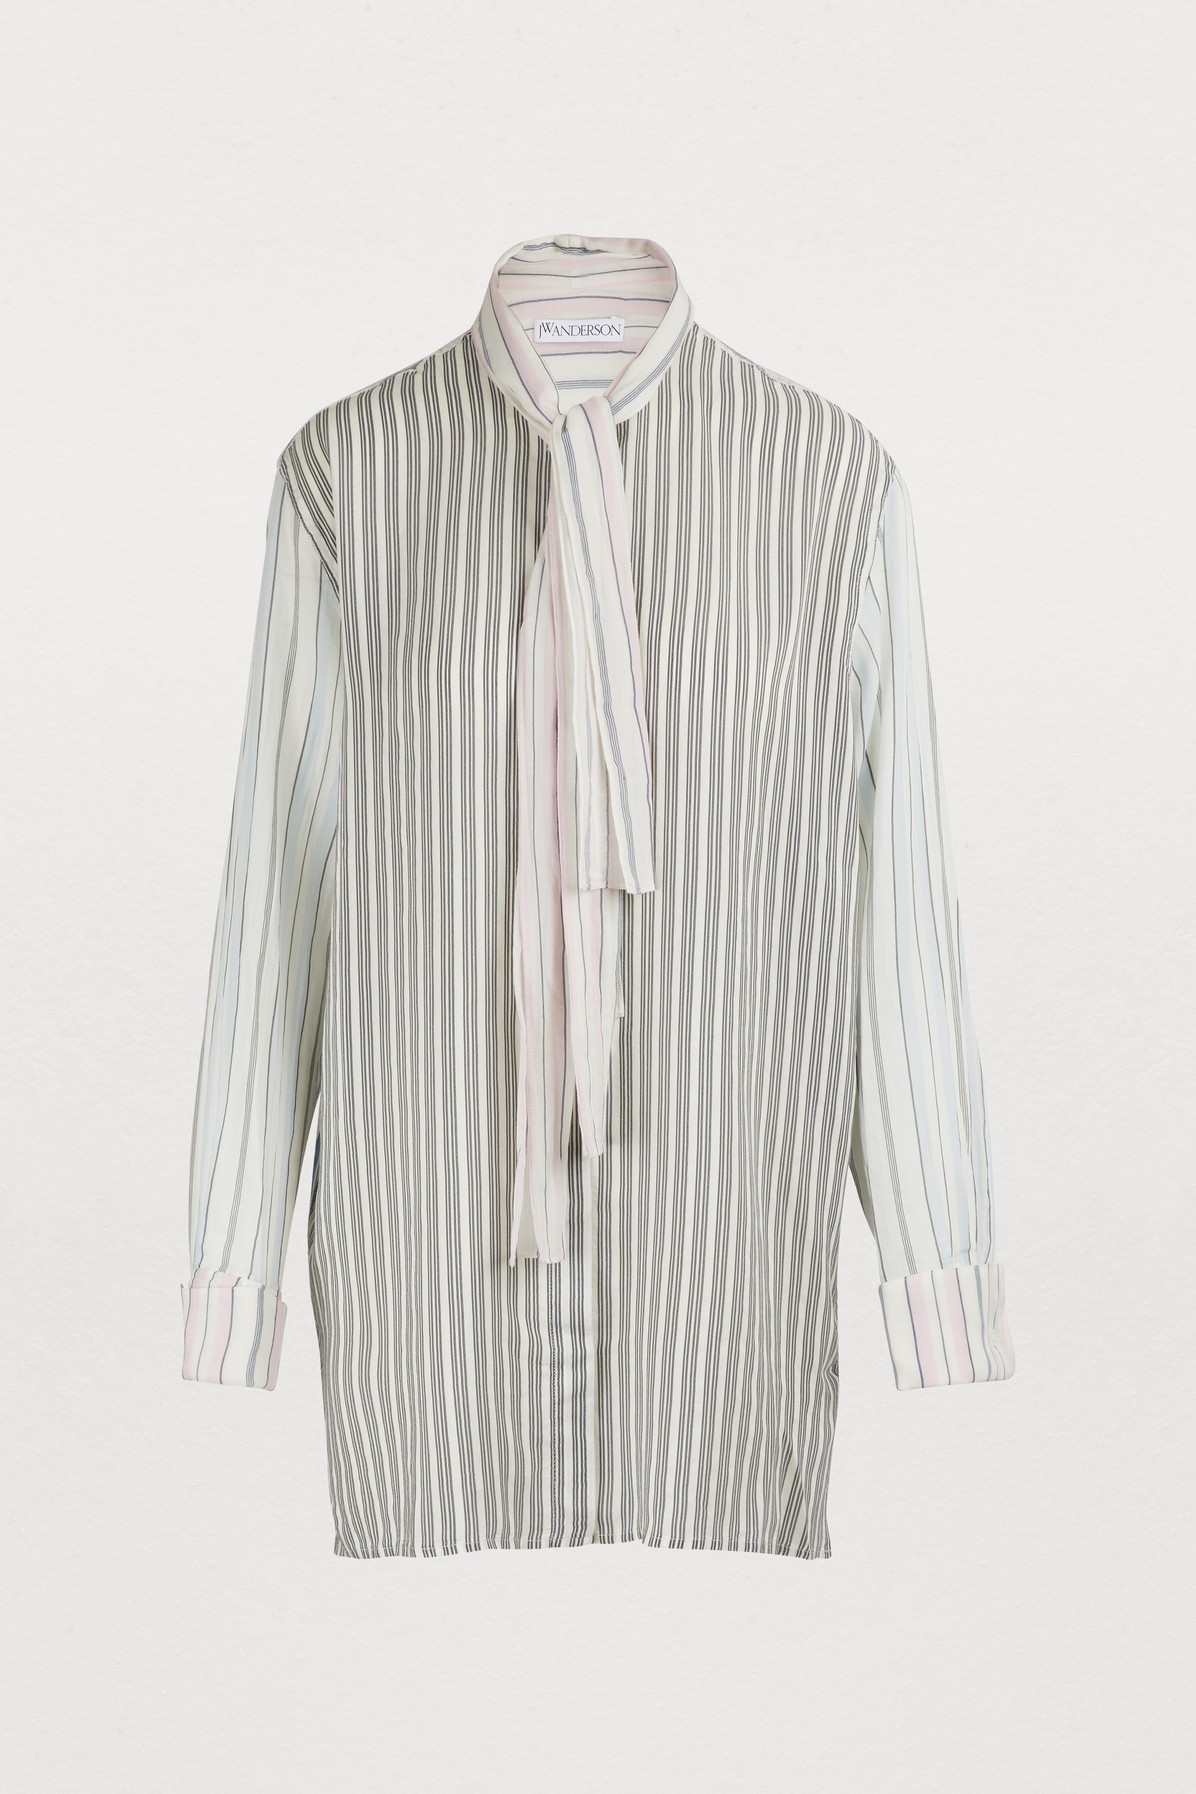 J.w.anderson Striped shirt